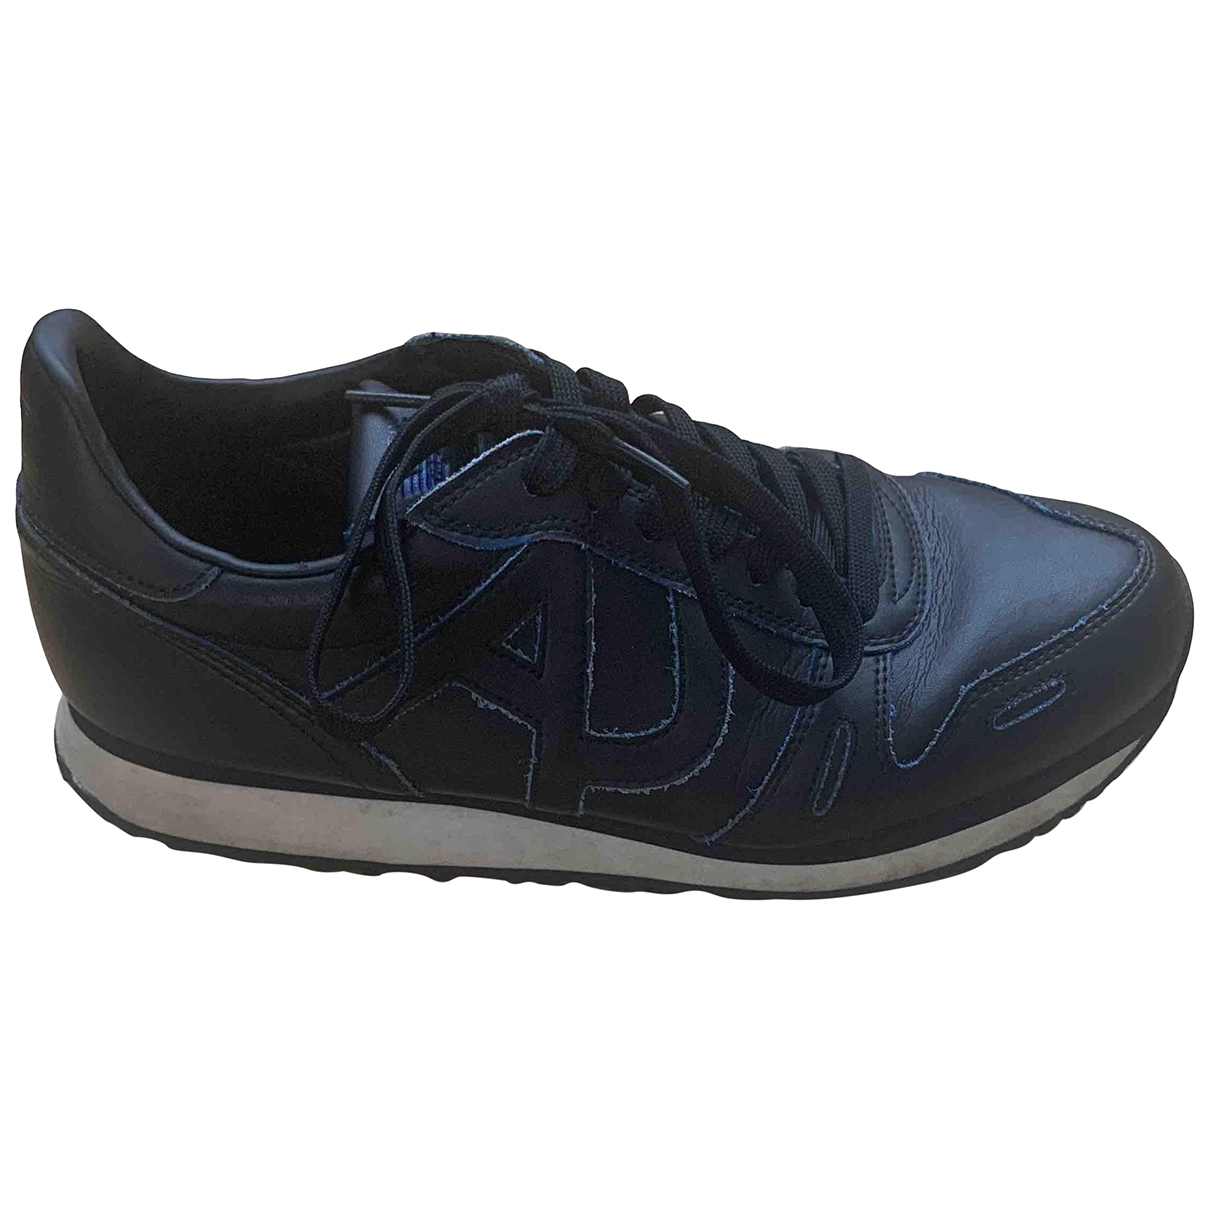 Armani Jeans \N Black Leather Trainers for Men 42 EU